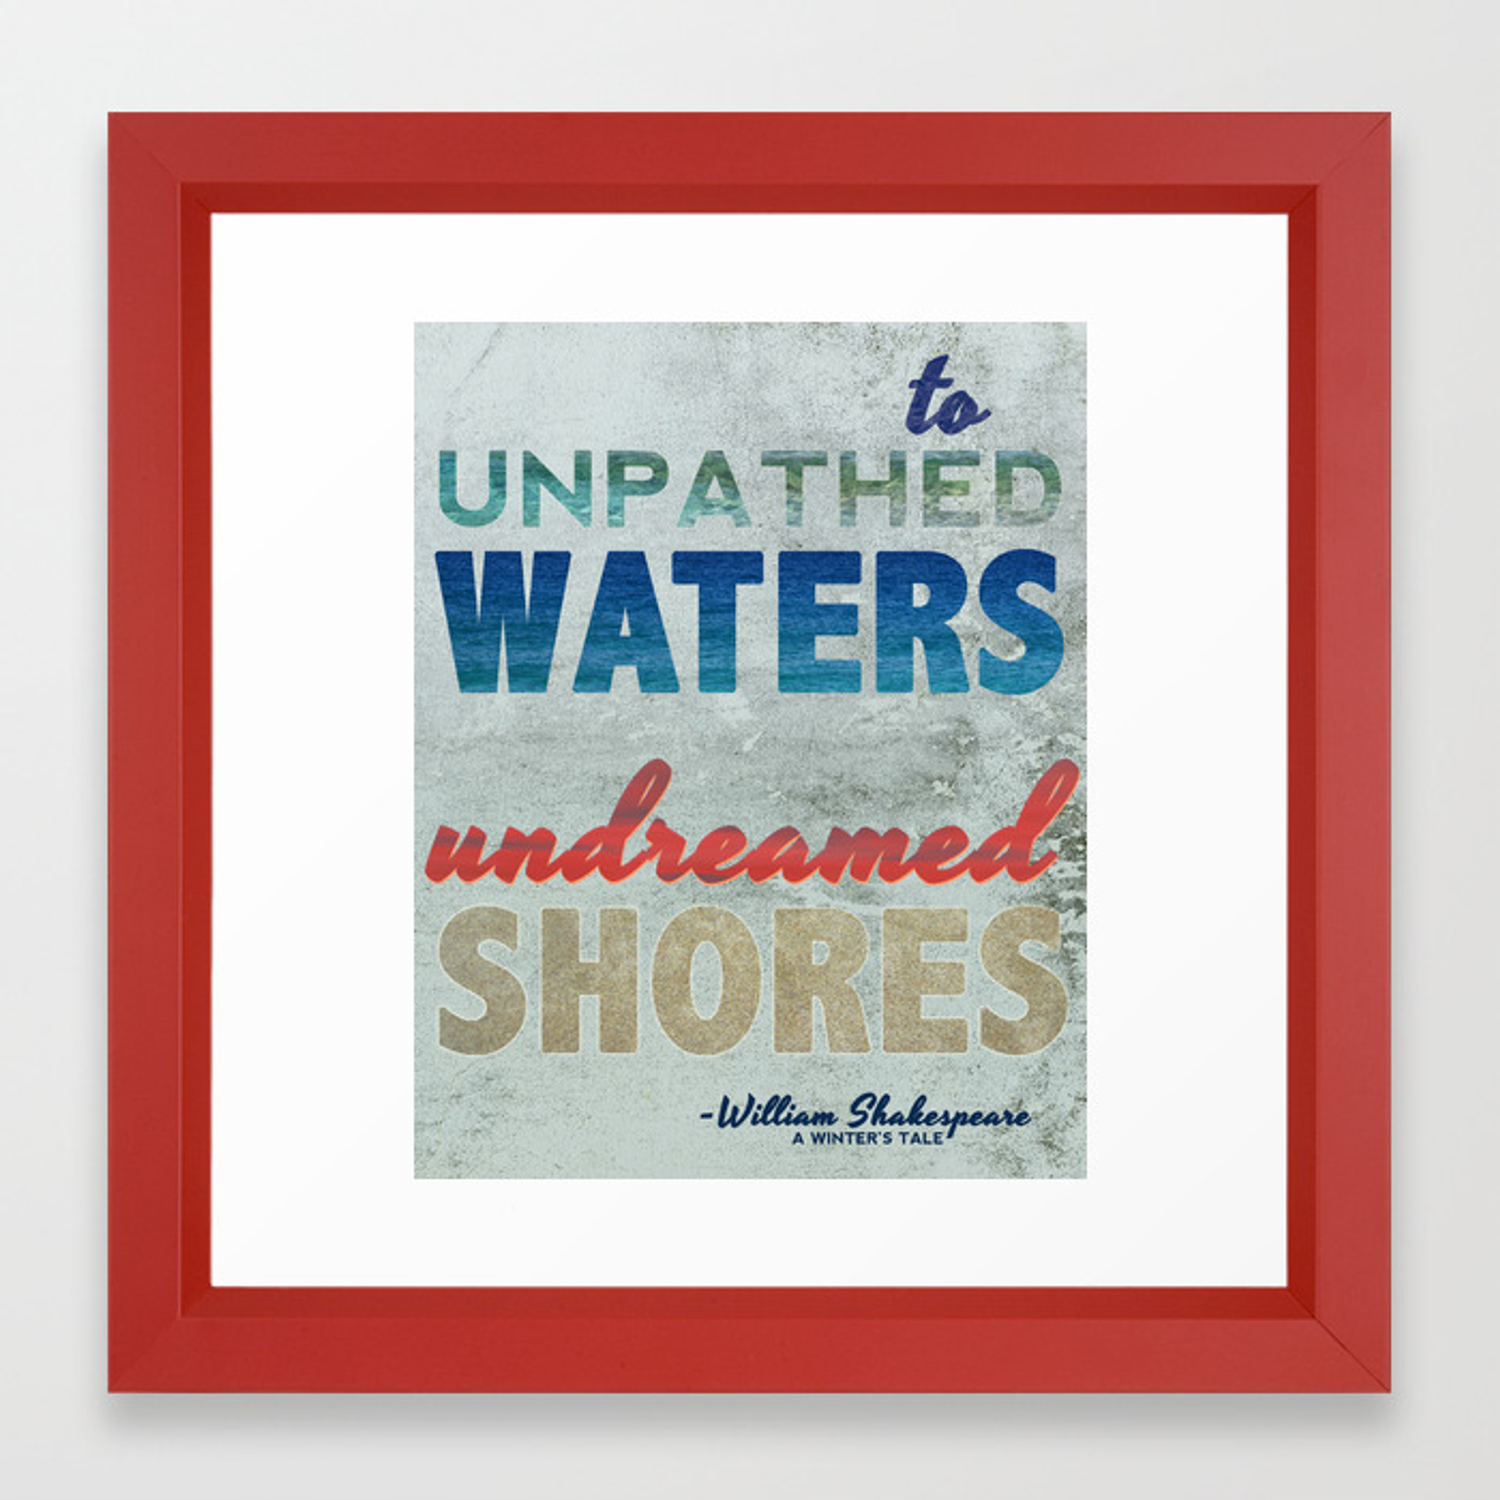 to unpathed waters undreamed shores shakespeare motivational